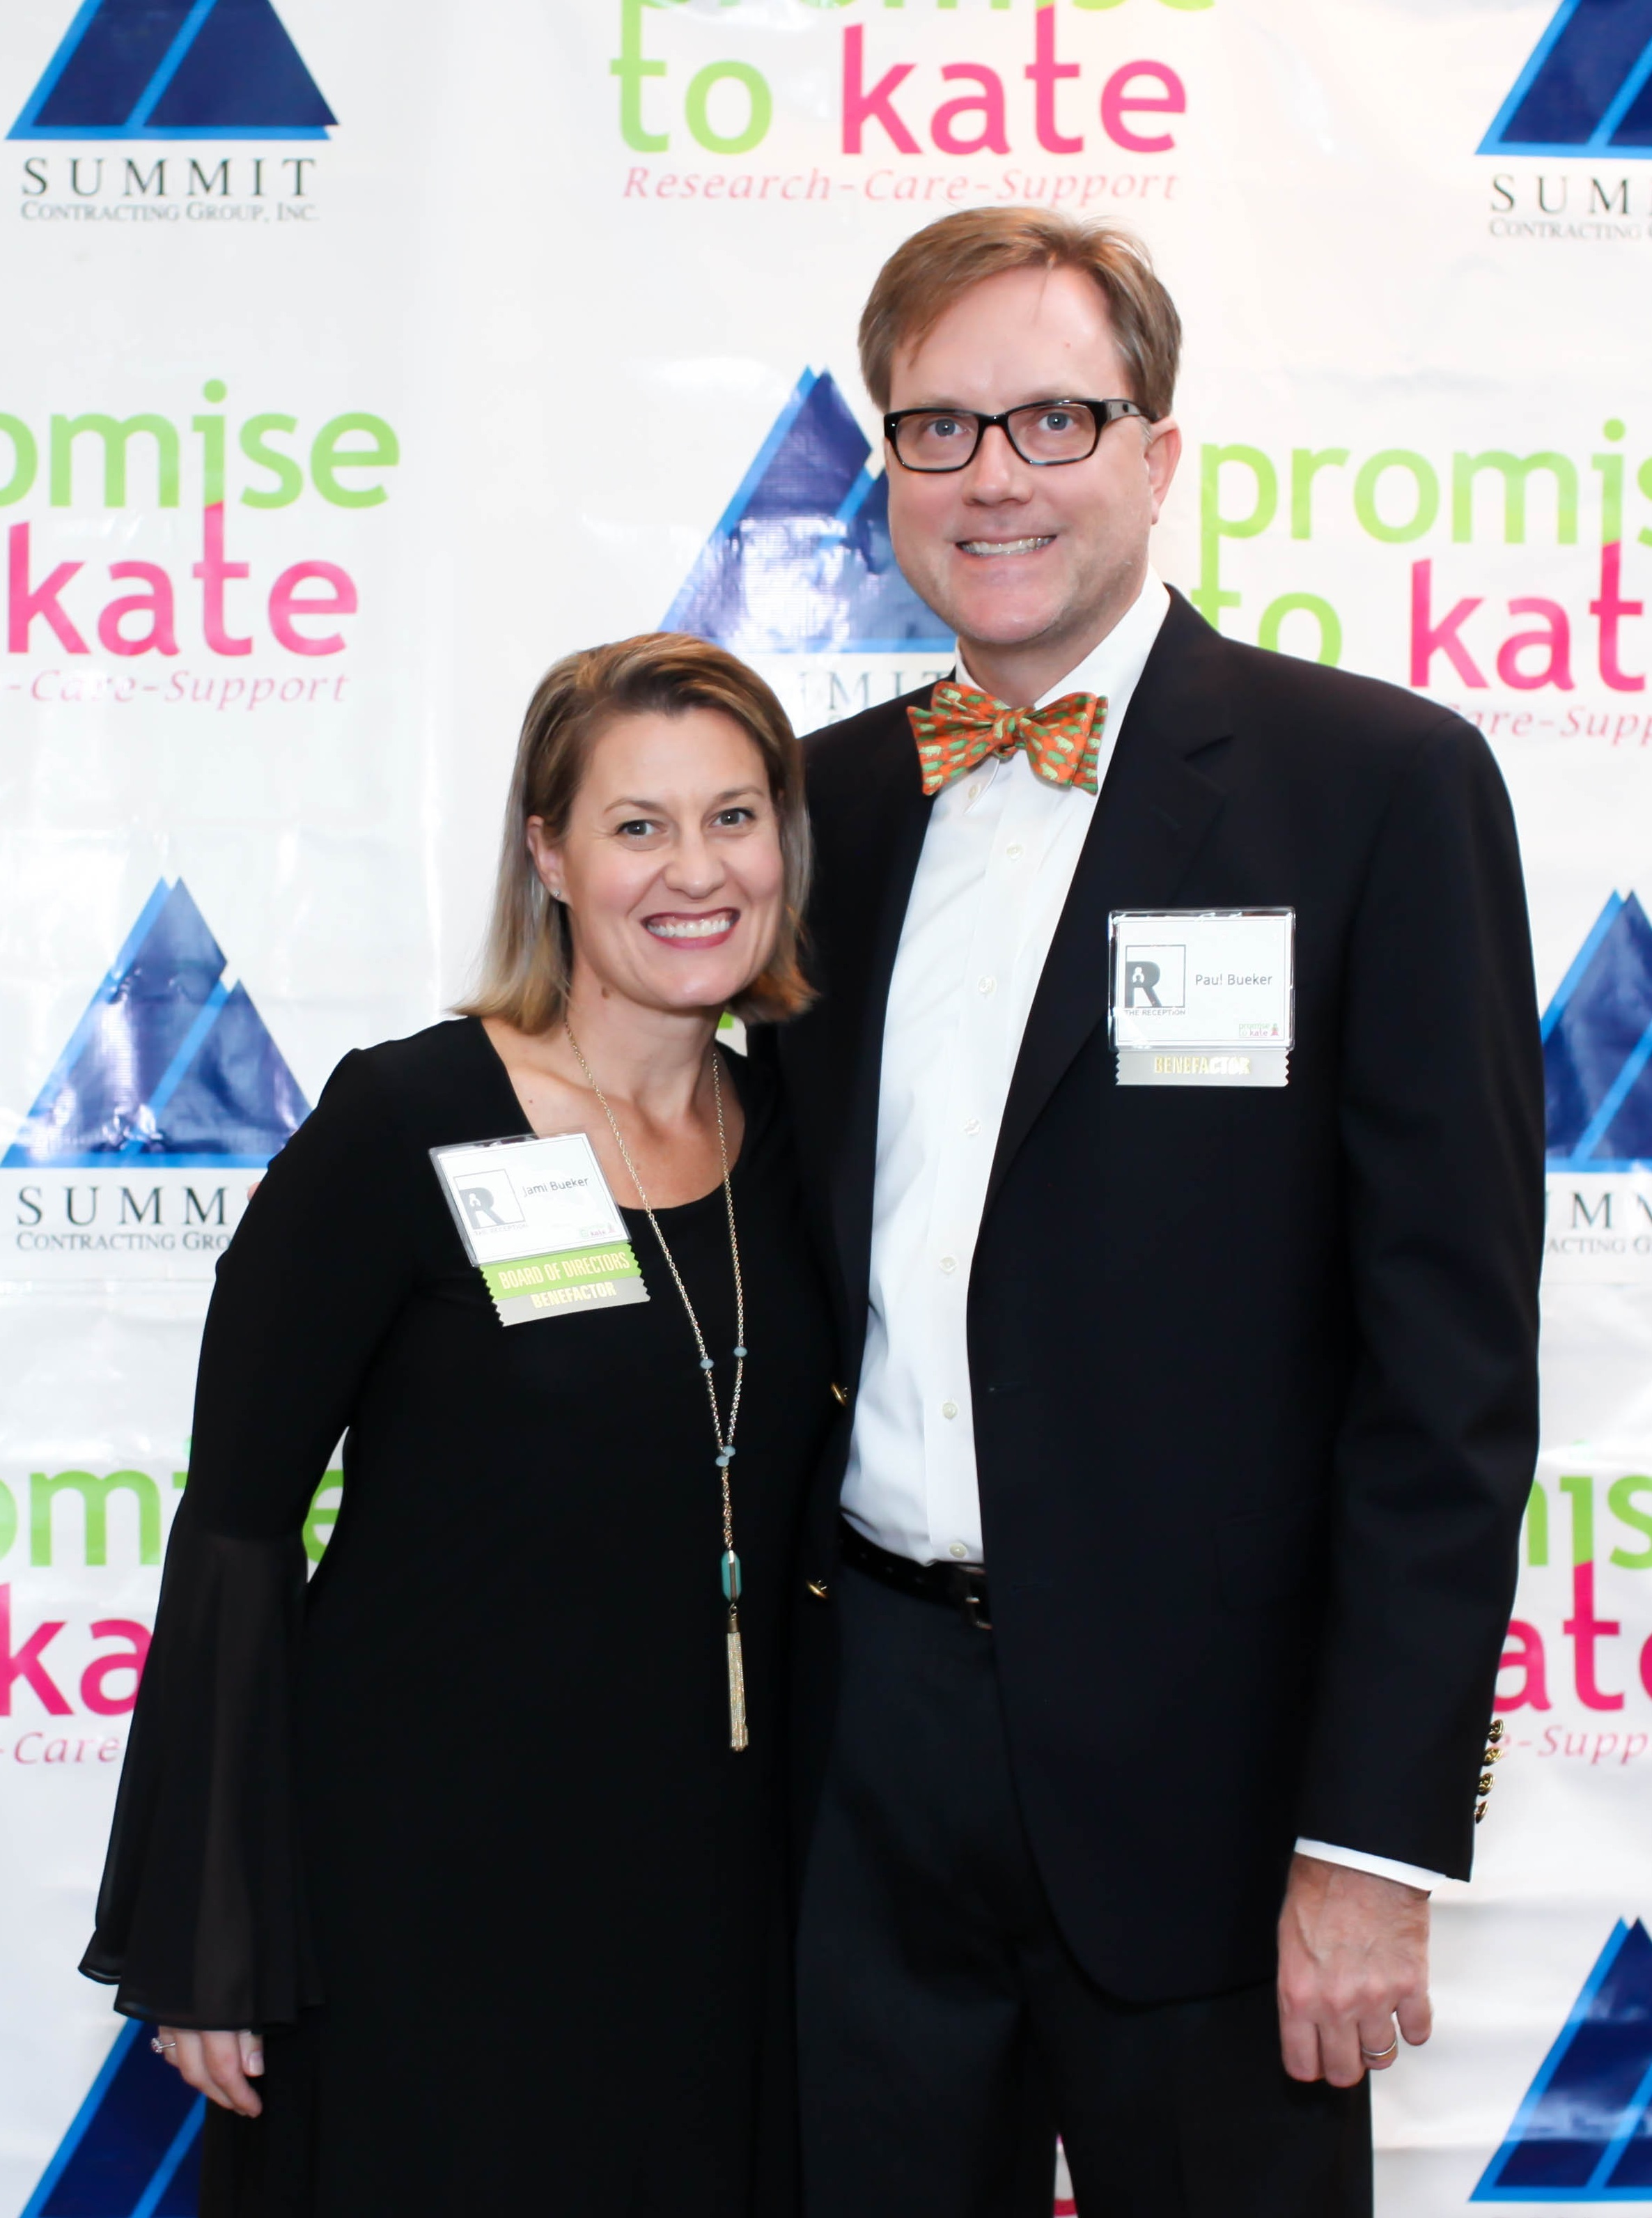 Jami with husband Paul at The Reception, Promise to Kate's annual fundraising gala.